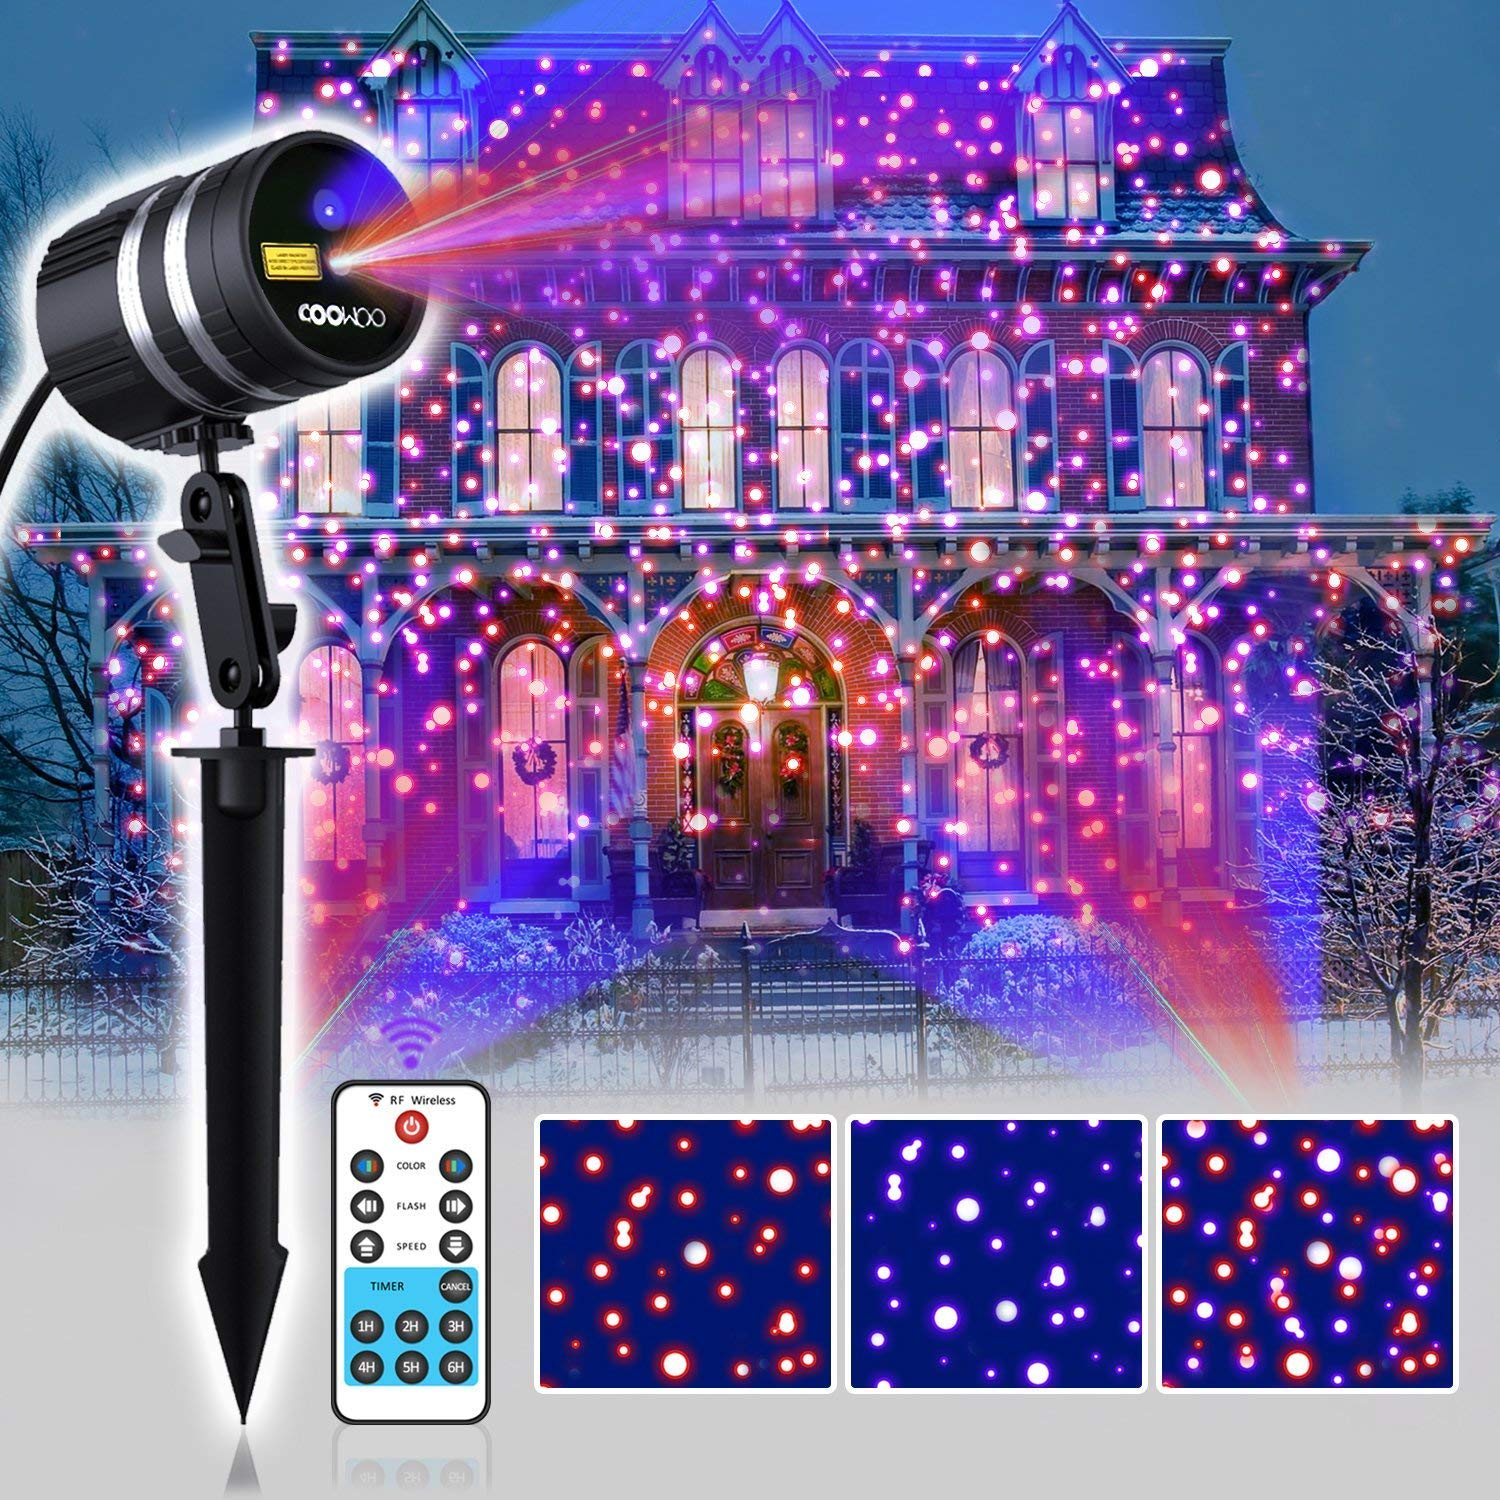 Christmas Decoration Laser Lights, Red and Green Laser Starry Show with Blue LED Light Background with Built-in Automatic Timer Control for Indoor& Outdoor UPADALWAYS TECHNOLOGY INC.